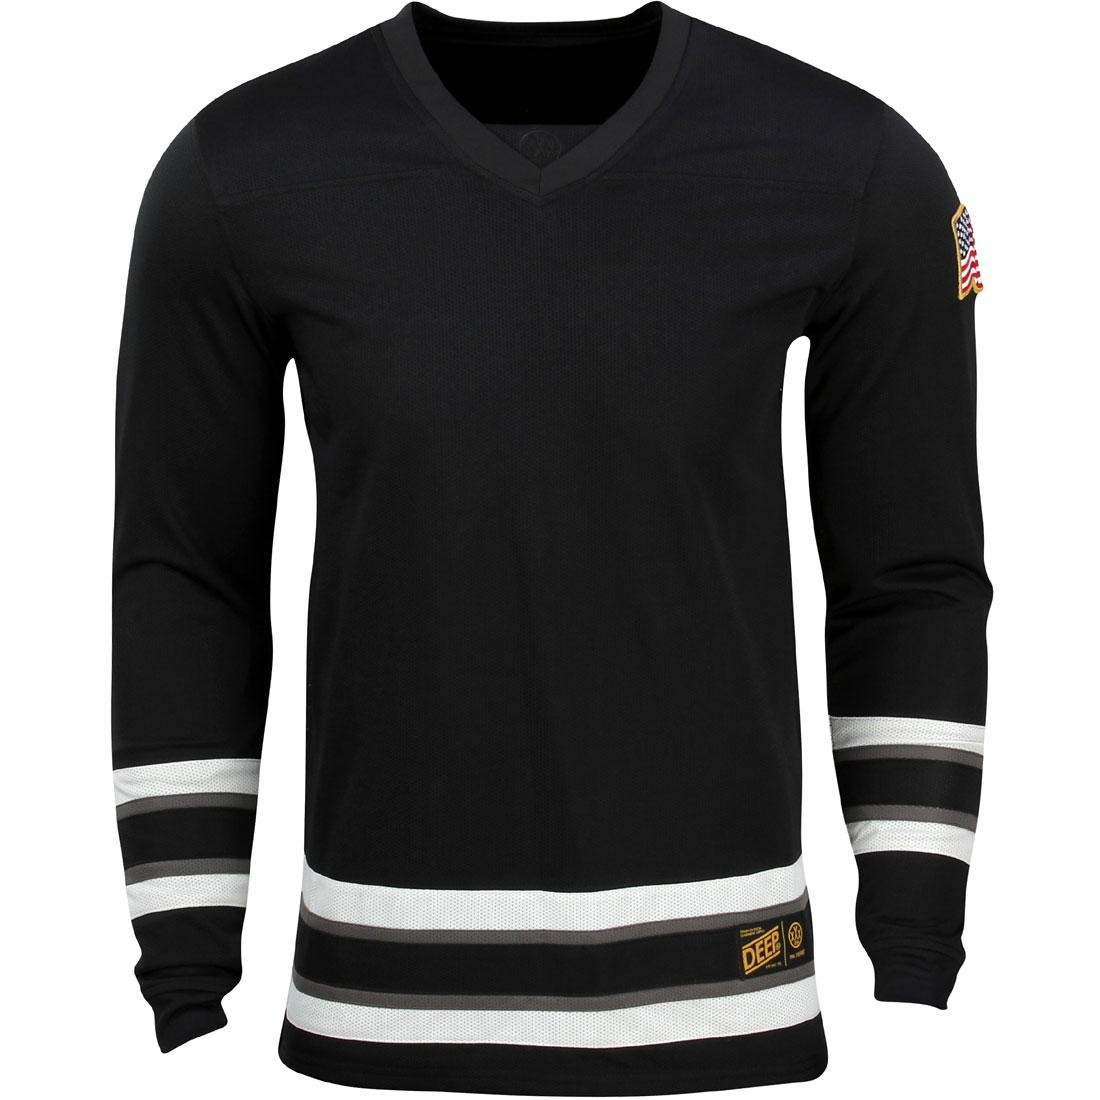 10 Deep 95 Mesh Jersey Shirt black